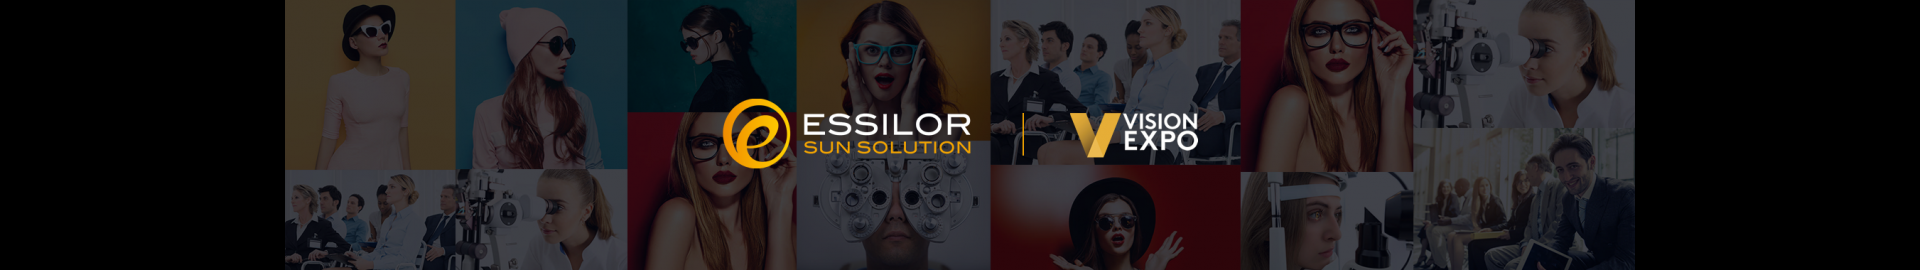 Essilor Sun Solution - Vision Expo New York